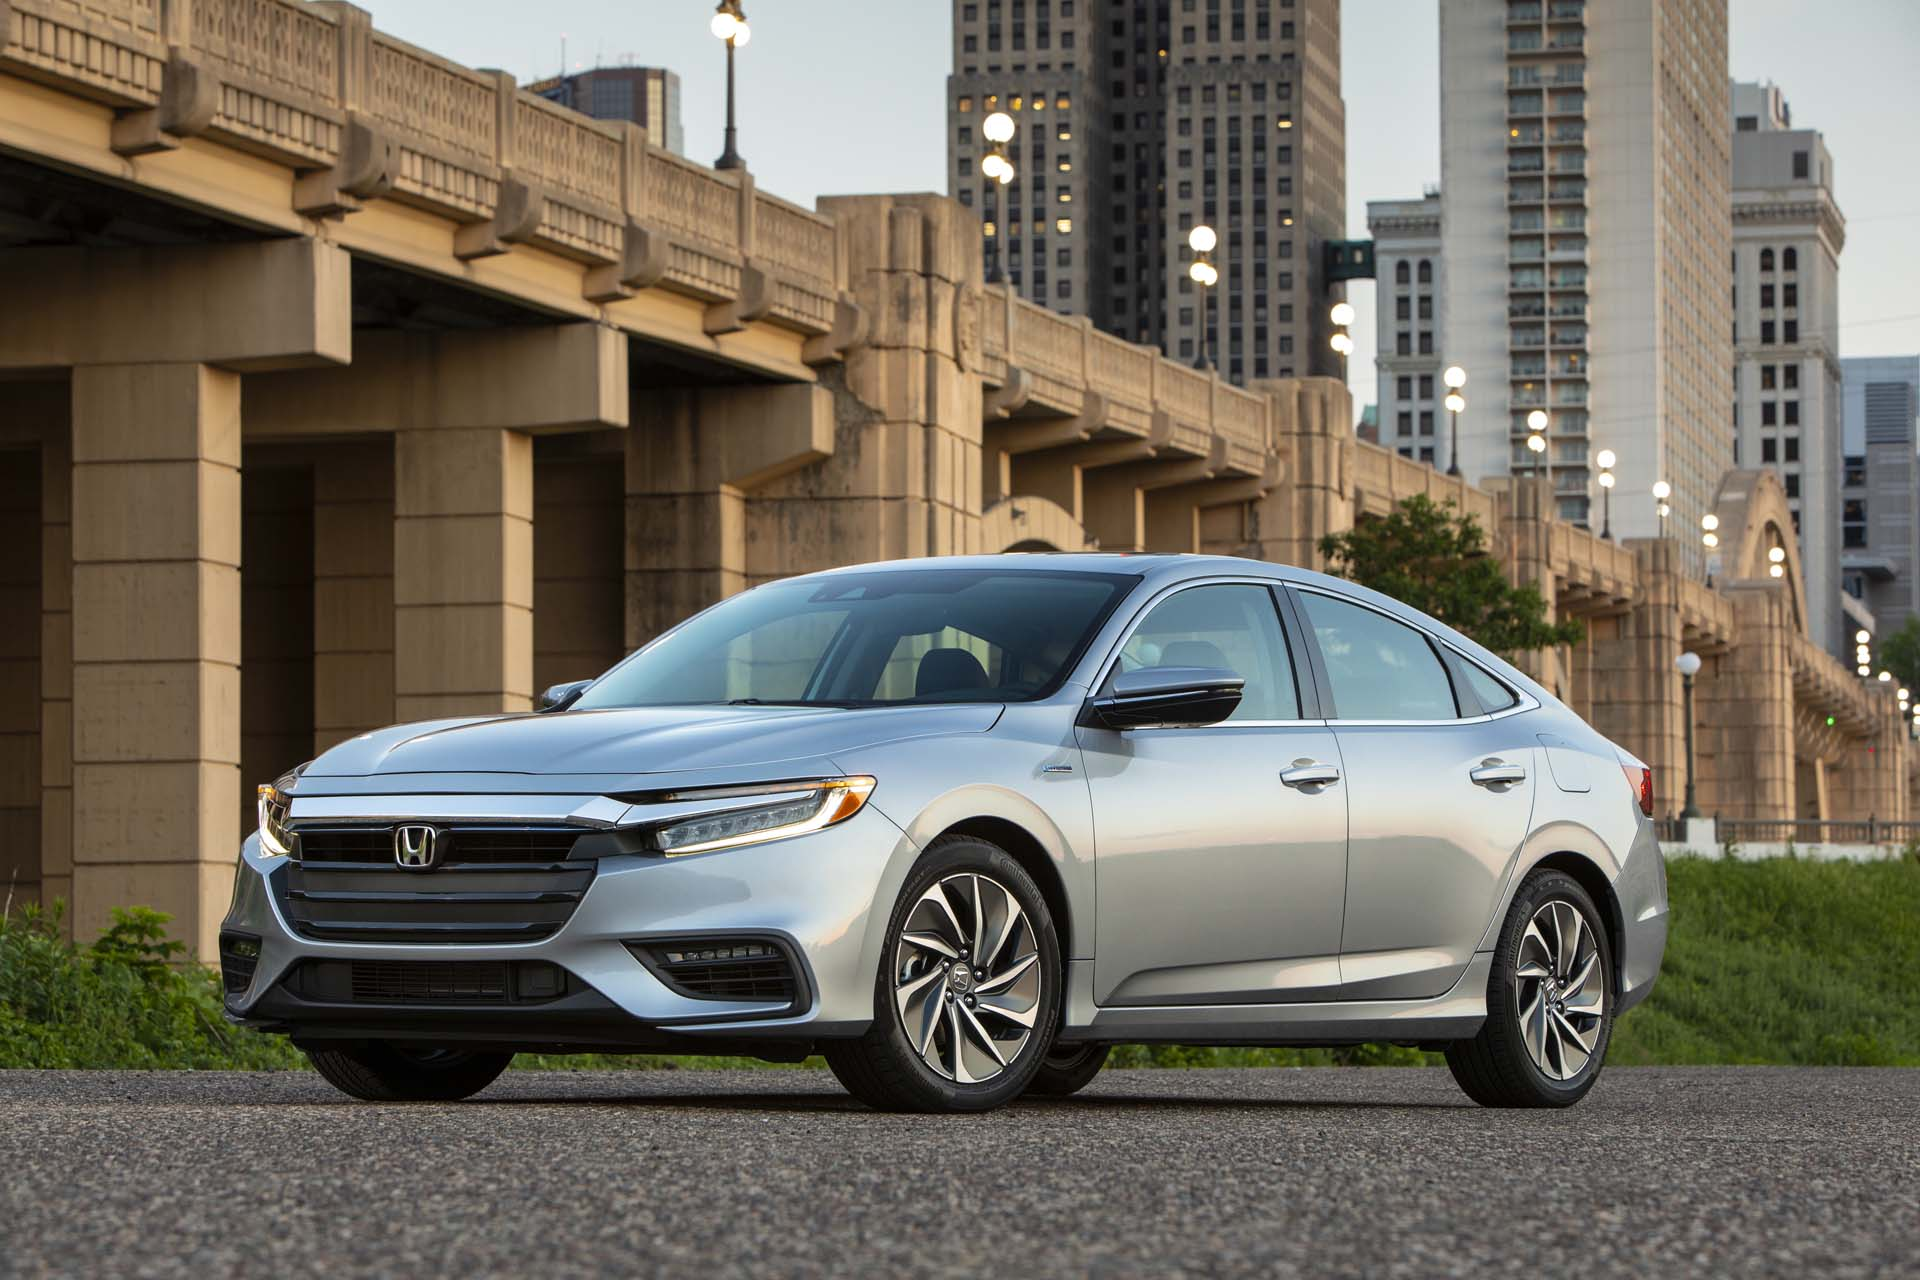 2019 Honda Insight first drive mpg review: 55 mpg from ...